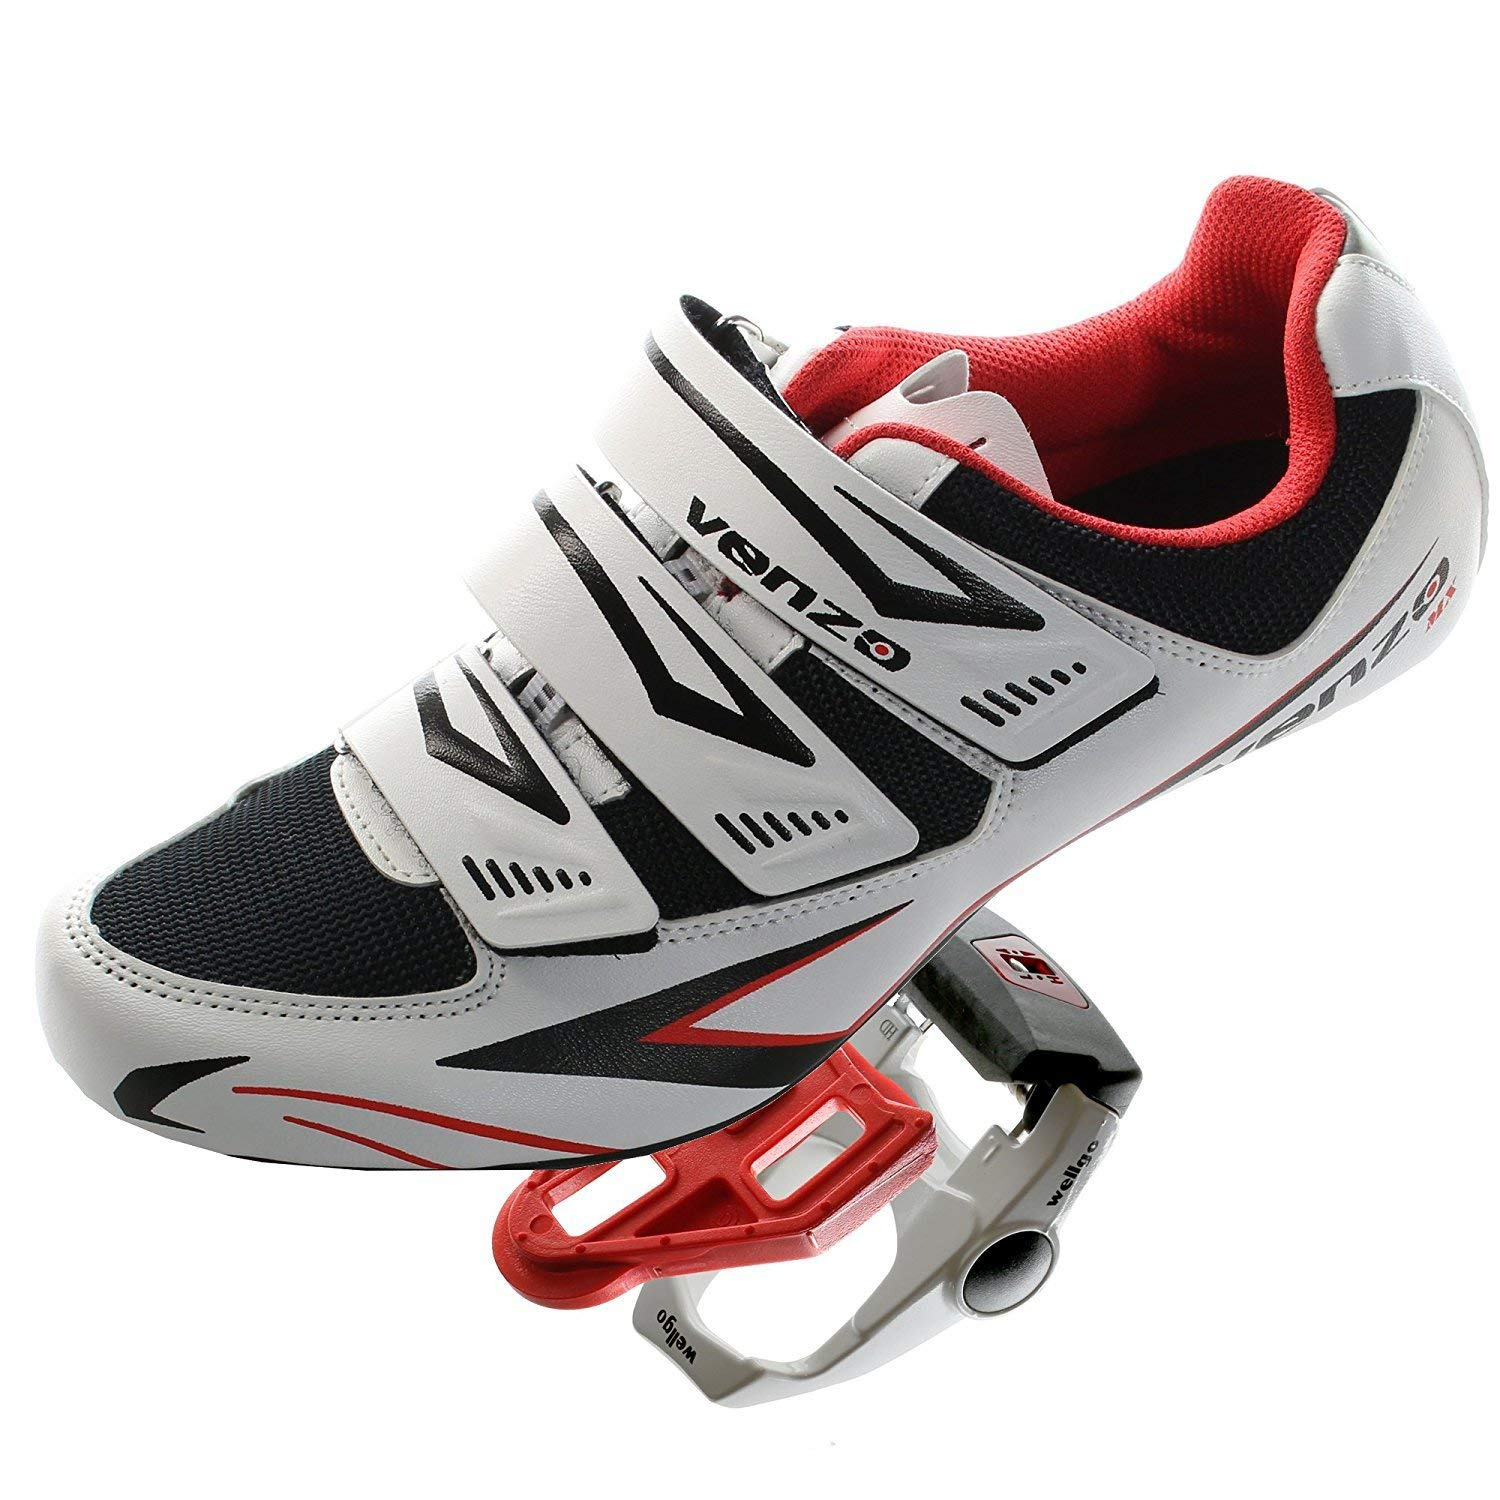 buy soulcycle shoes best cycling cleats shimano